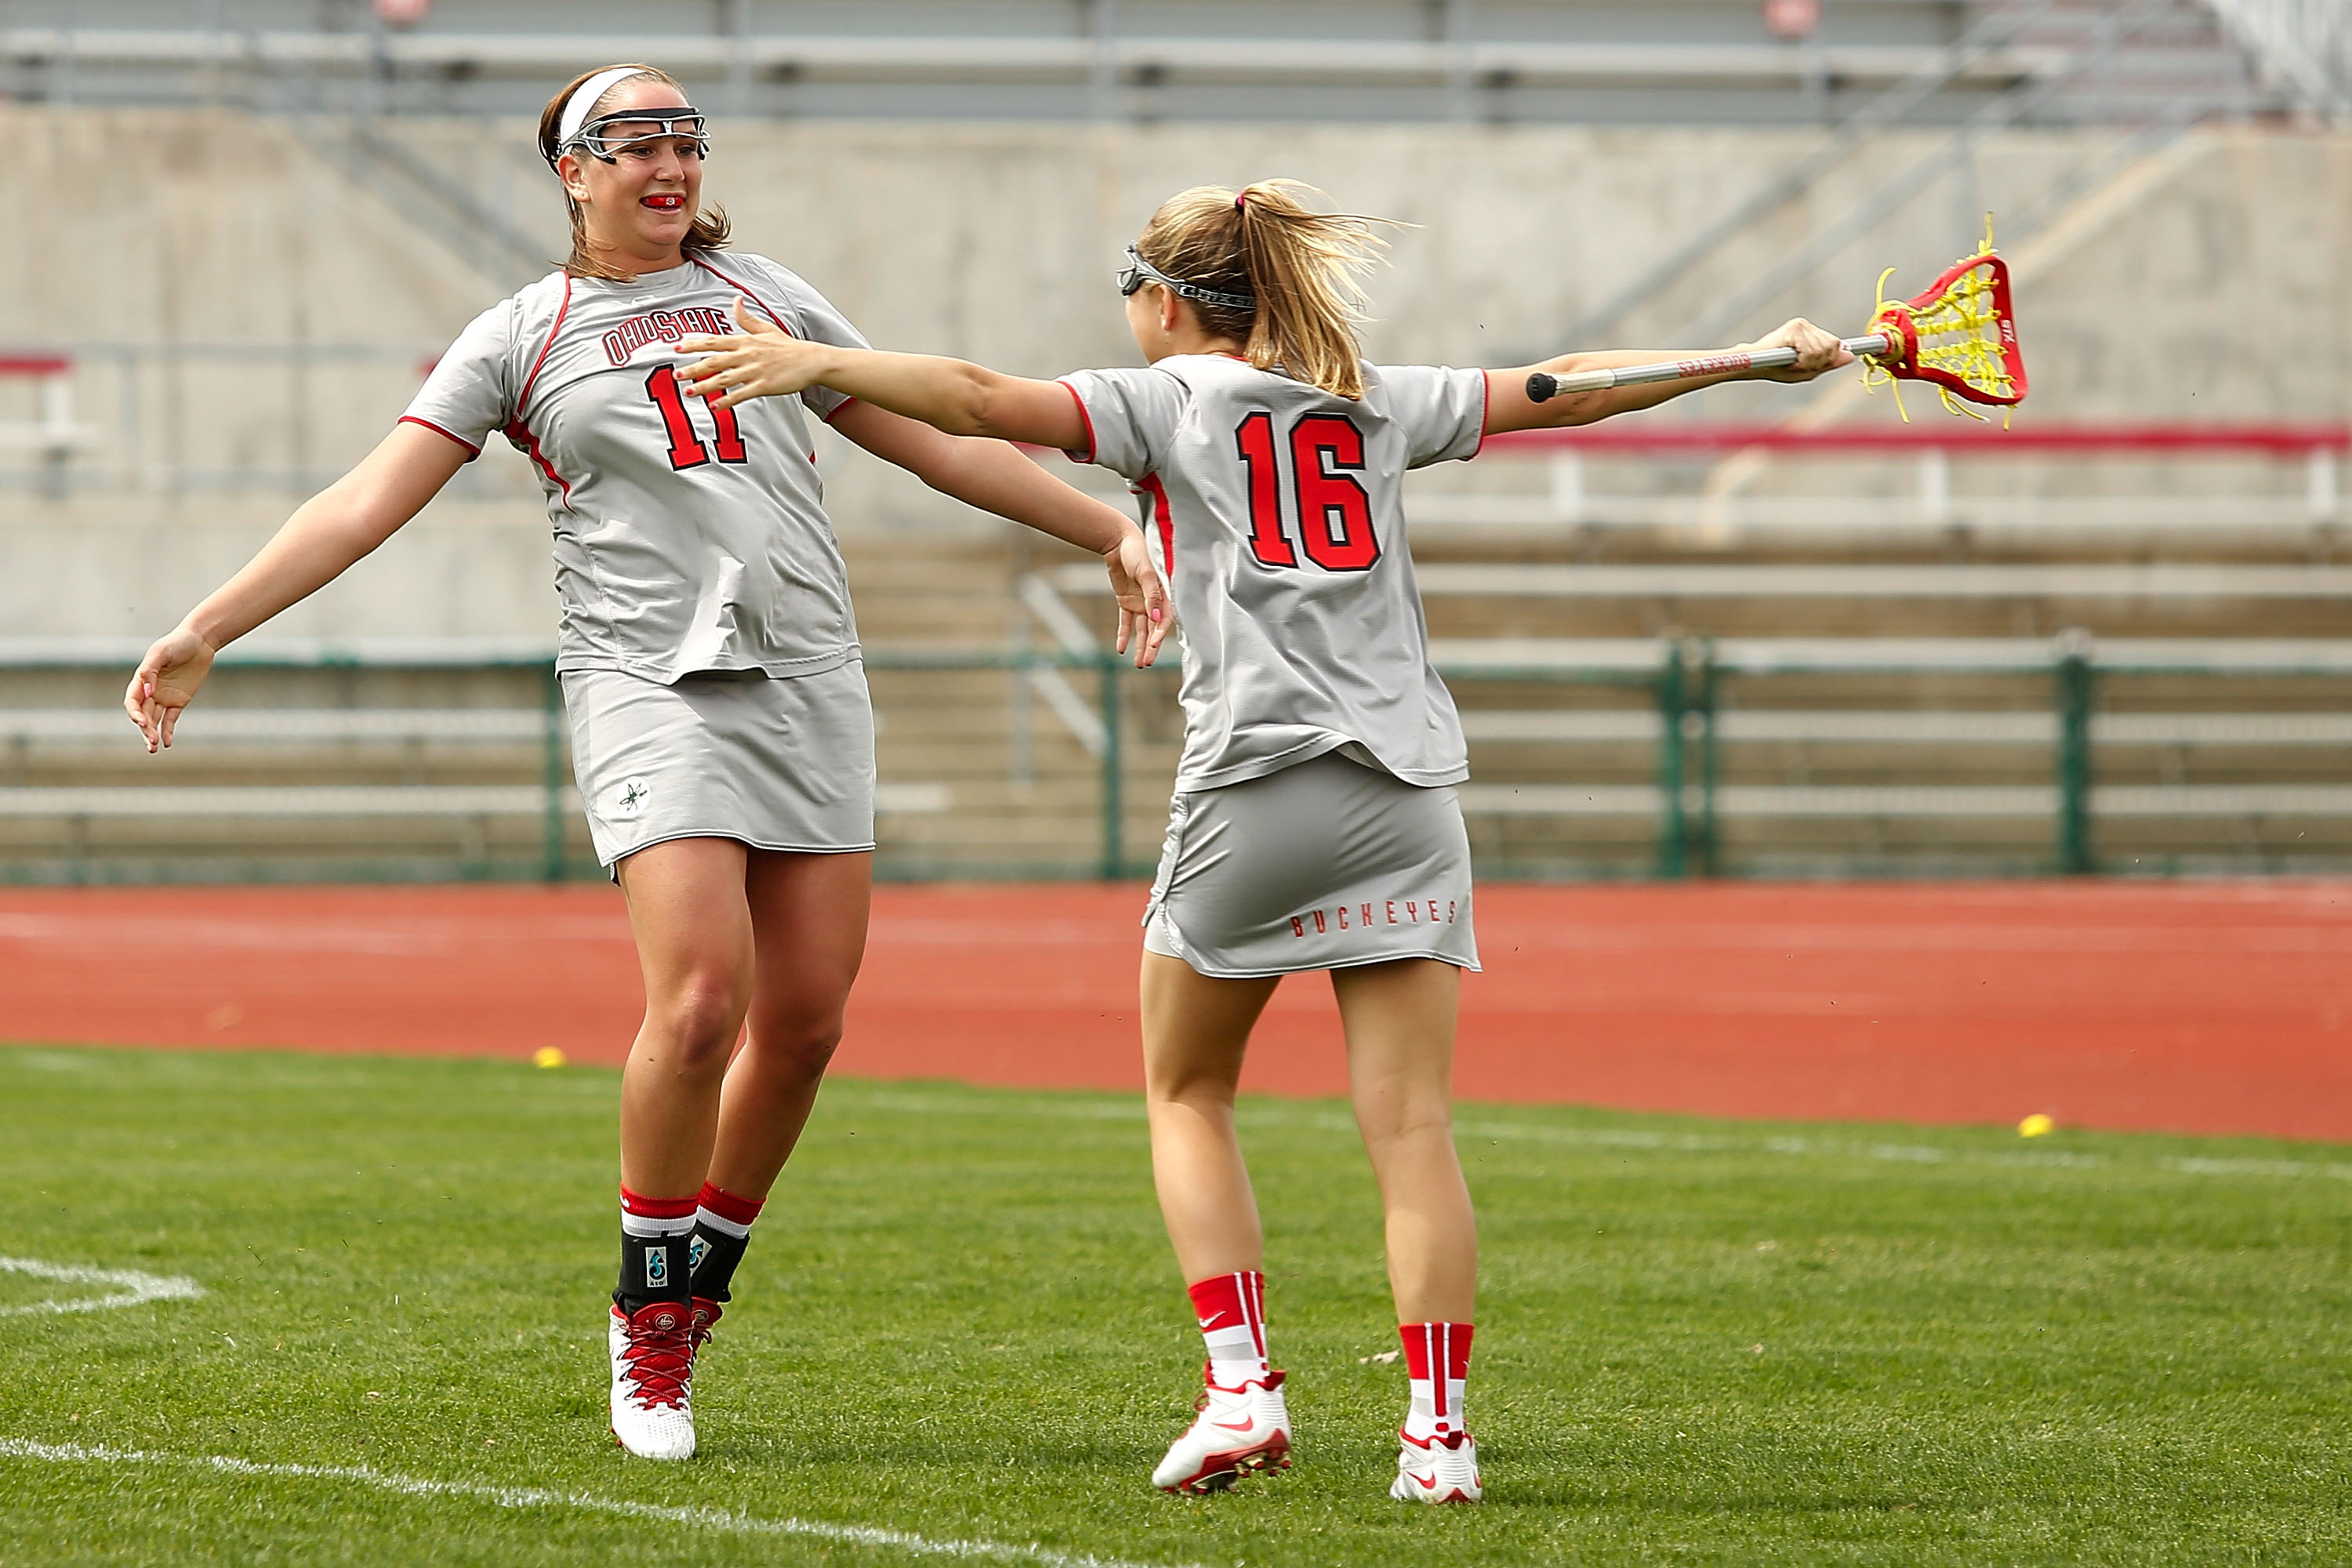 Ohio State plays Pen State in women's lacrosse at Jesse Owens Memorial Stadium in Columbus, Ohio on Sunday, April 13, 2014. Ohio State defeated Penn State 10-9.